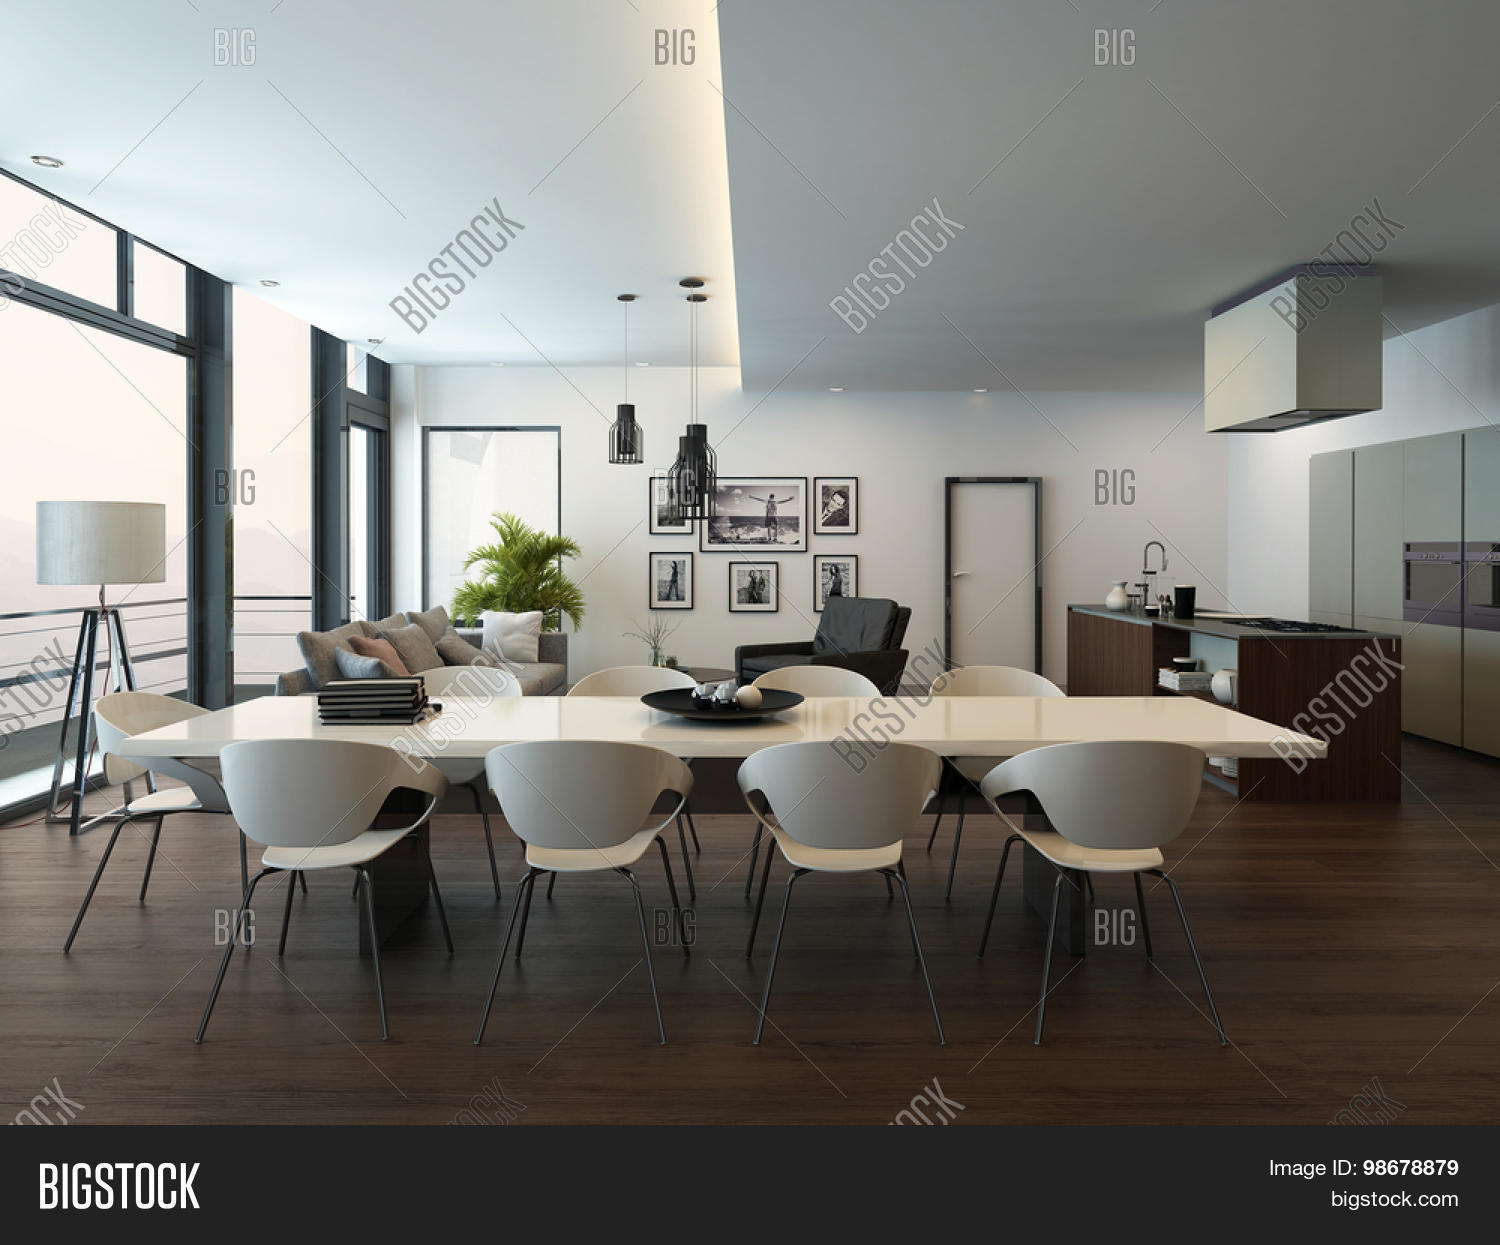 Luxury Modern Apartment Living Room Image amp Photo Bigstock : 98678879 from www.bigstockphoto.com size 1500 x 1245 jpeg 164kB